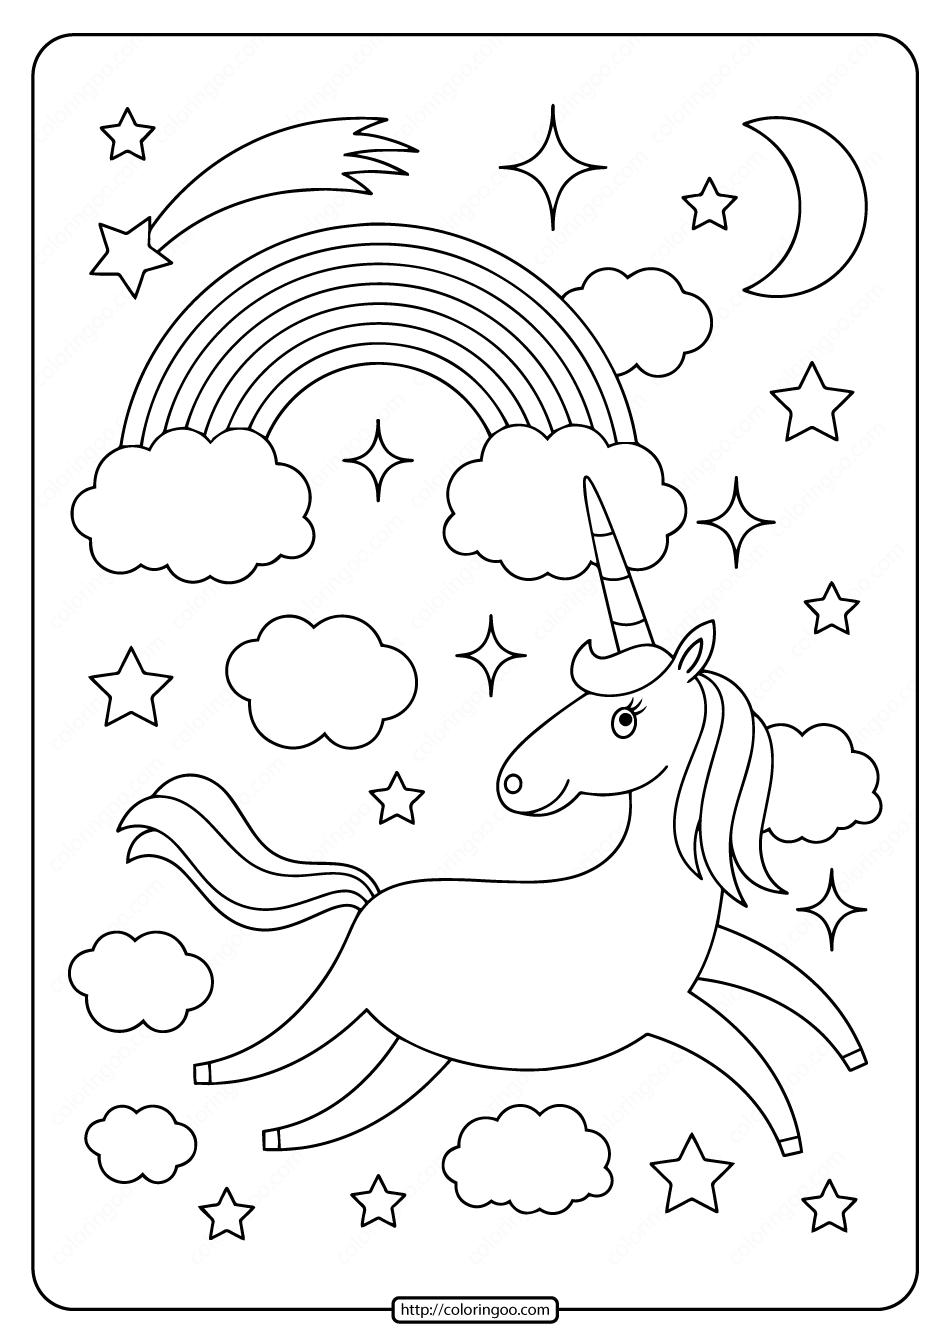 Printables Unicorn Coloring Pages 03